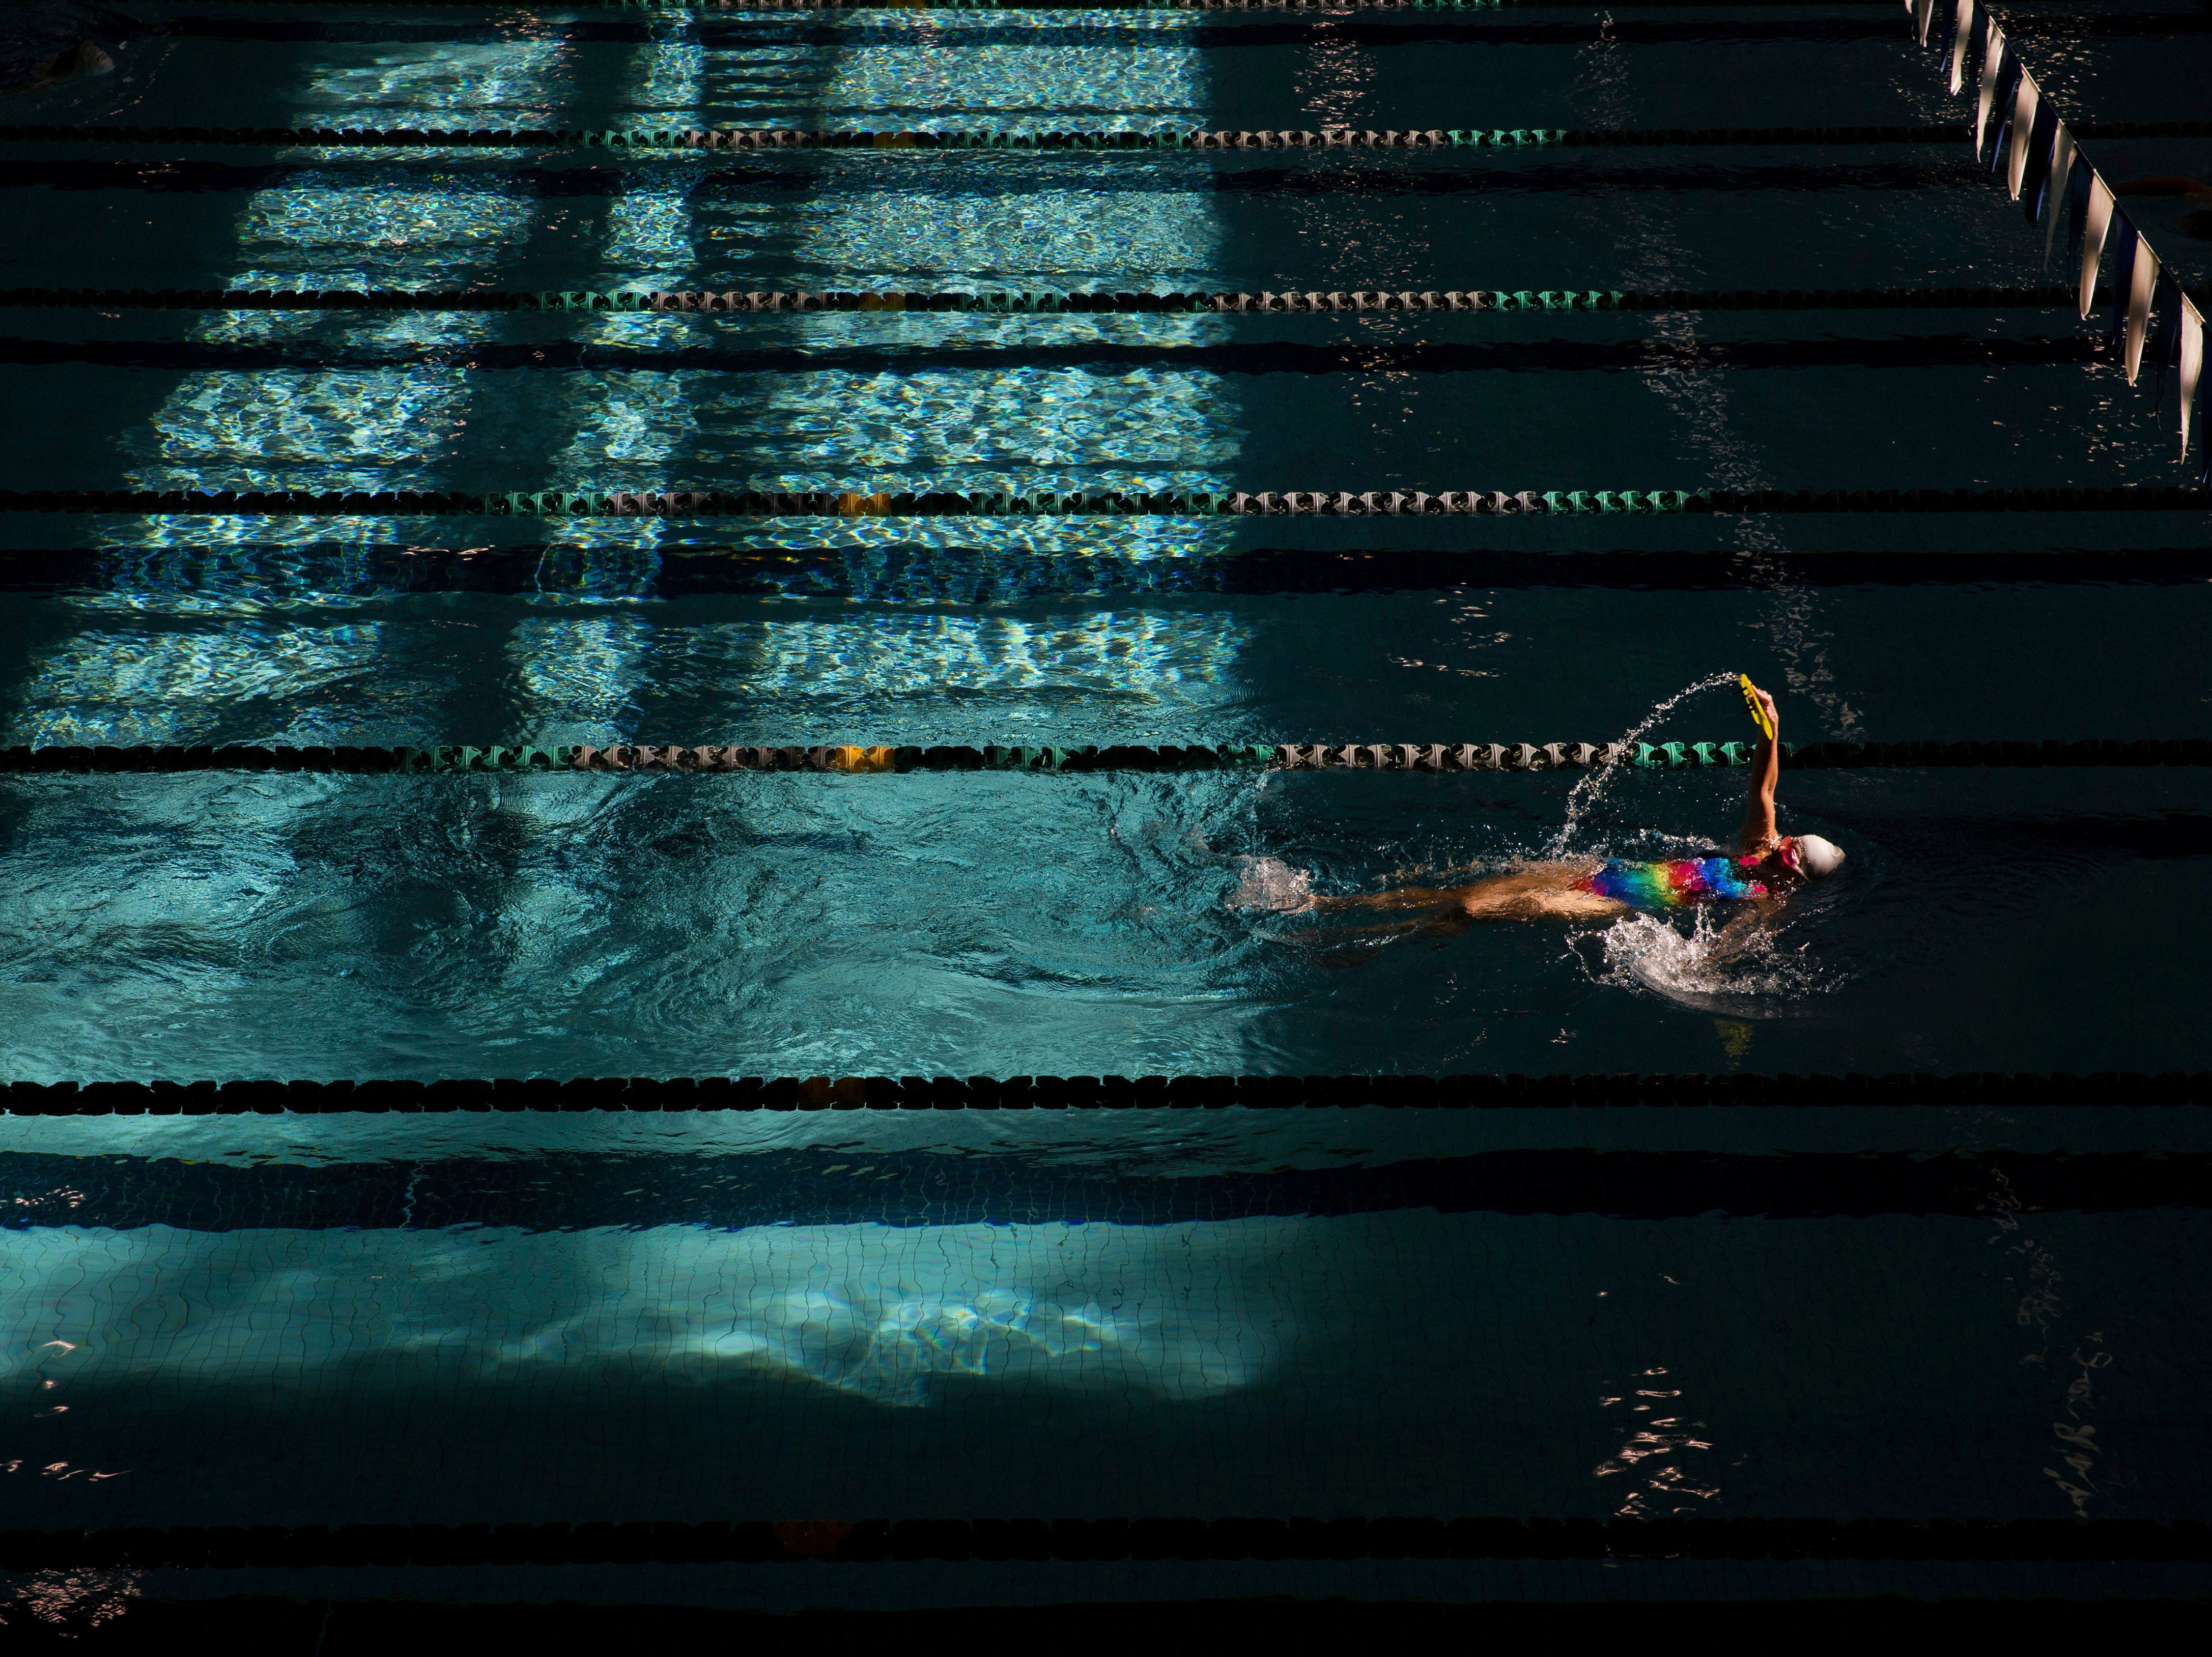 Feb. 5, 2018: Sunlight plays off the water inside Willamalane Park Swim Center as a swimmer does laps at the facility in Springfield, Ore.